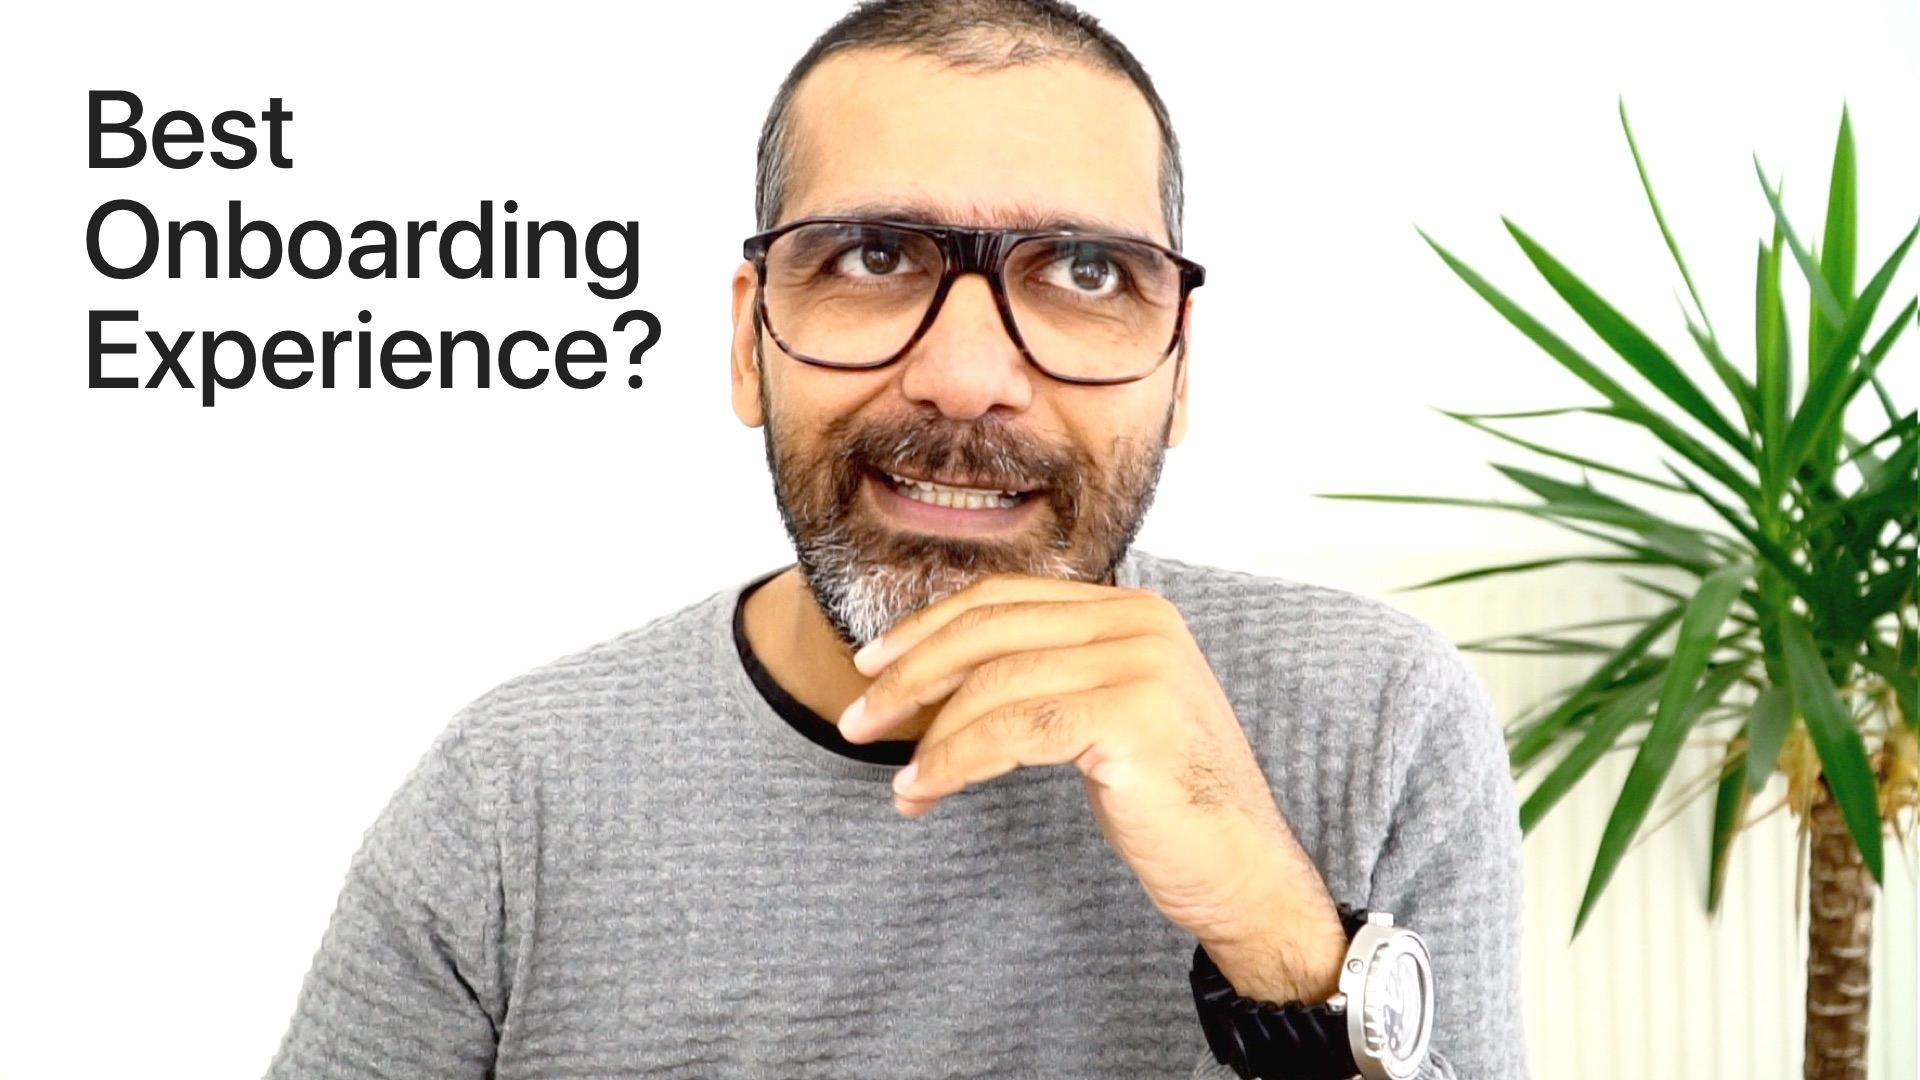 What was your best onboarding experience?